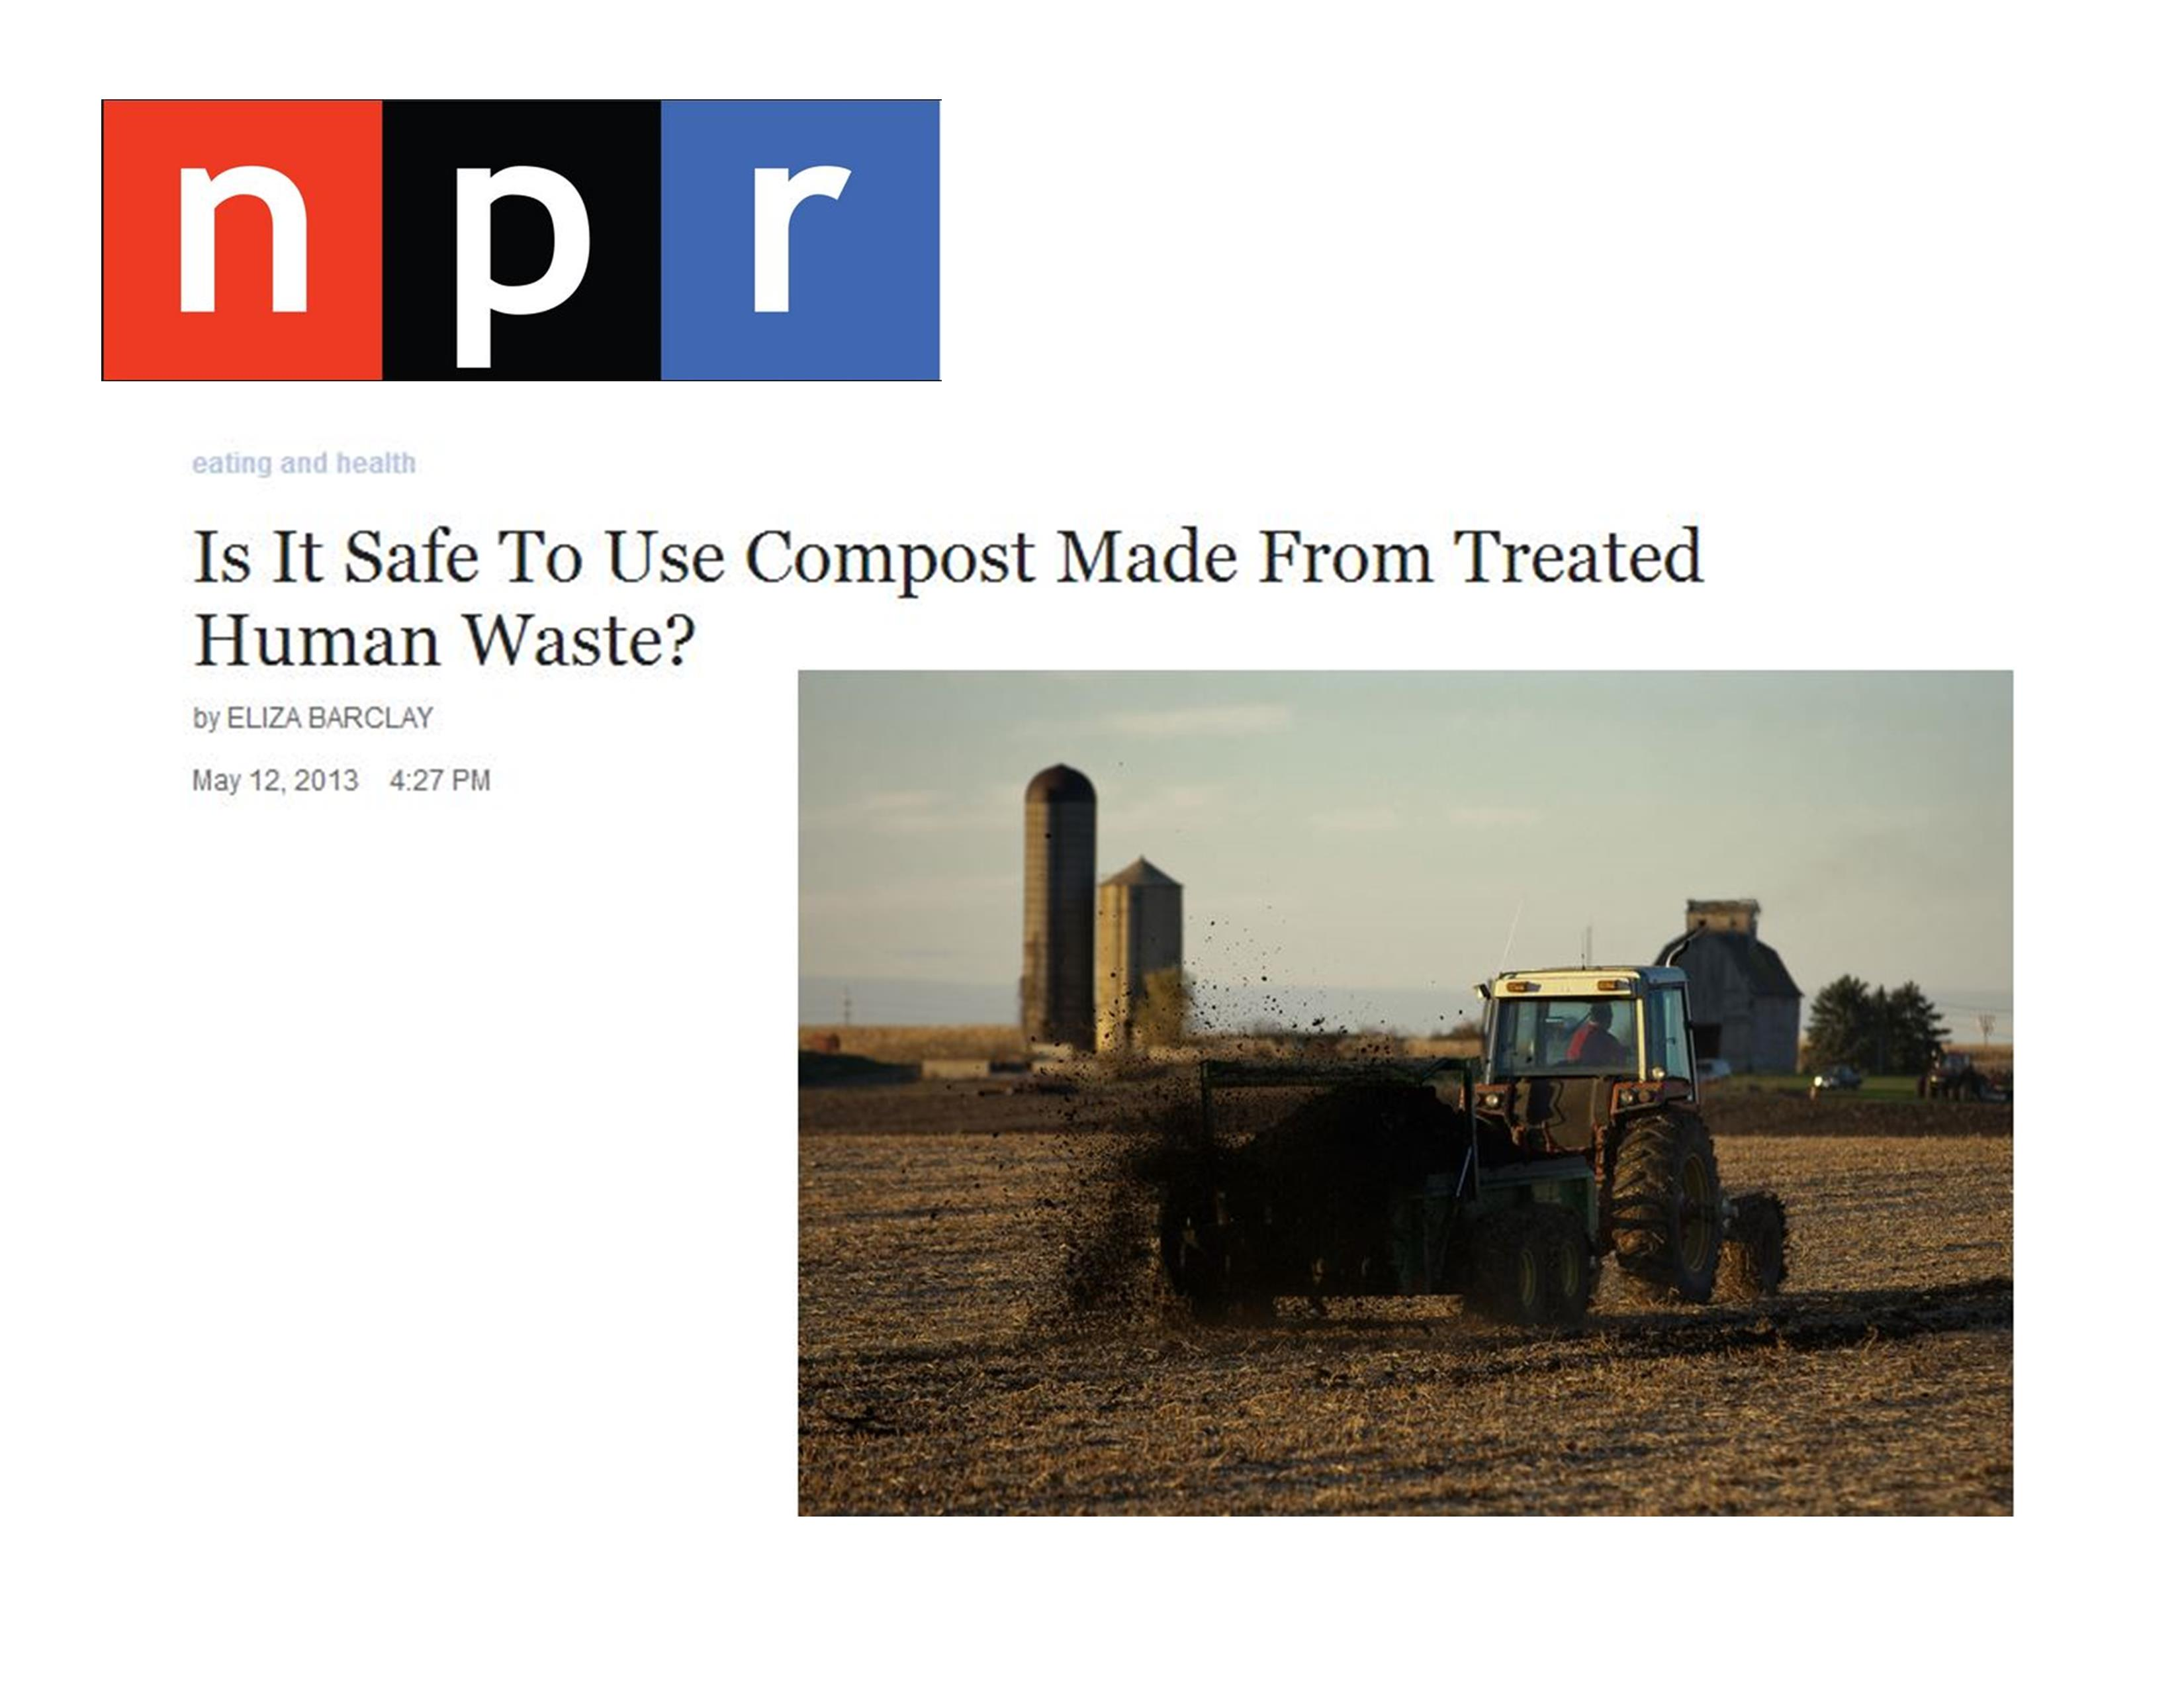 Is It Safe To Use Compost Made From Treated Human Waste?